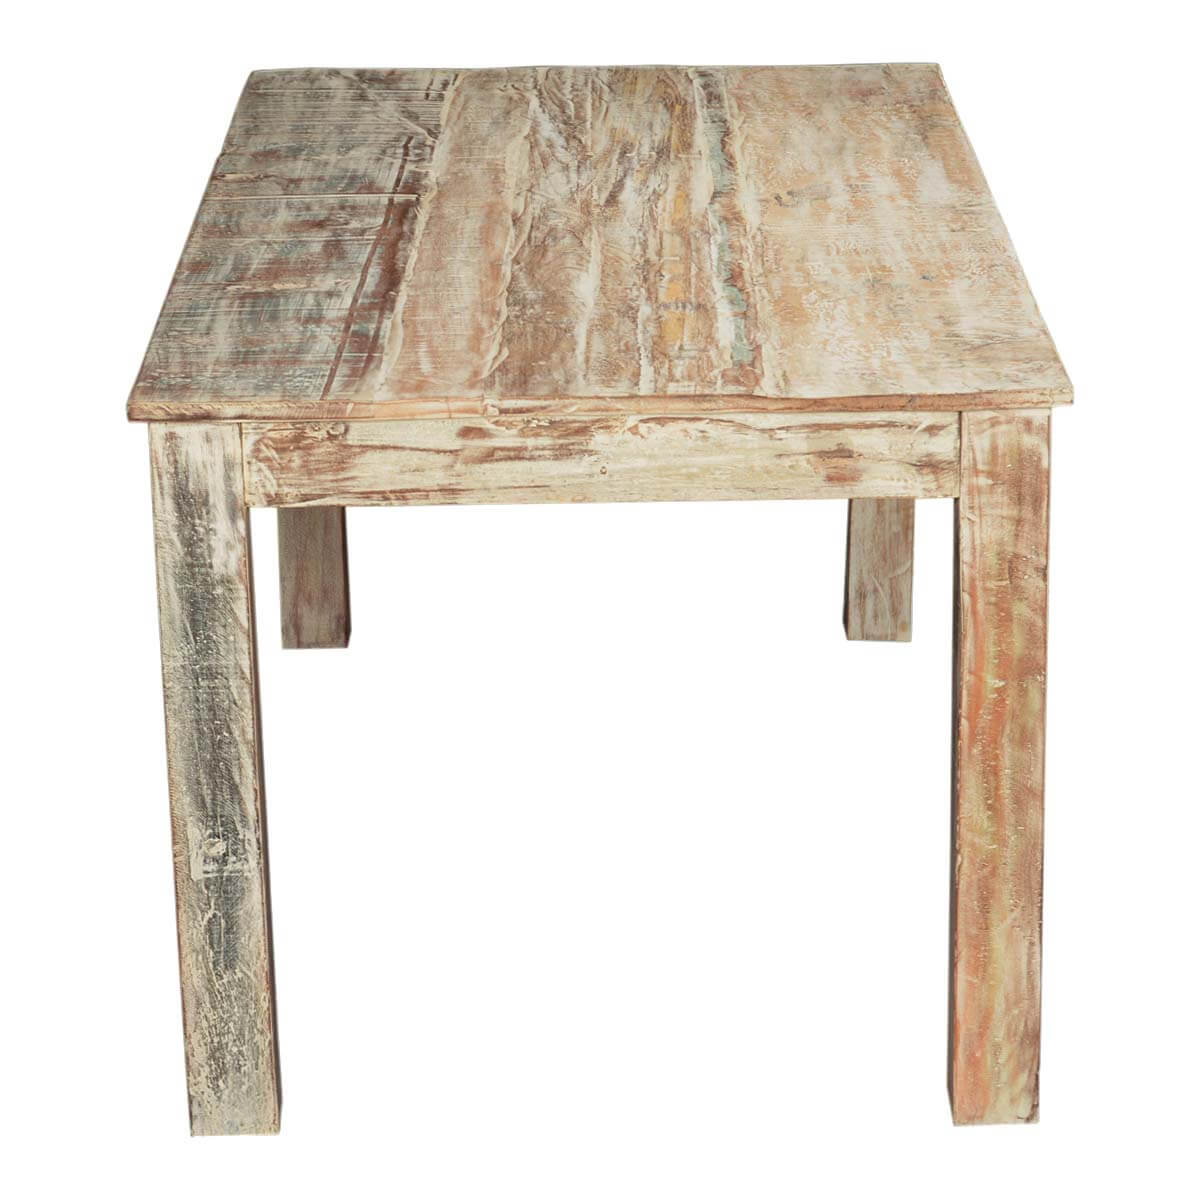 Rustic Reclaimed Wood Texas Distressed Dining Table : 60493 from www.sierralivingconcepts.com size 1200 x 1200 jpeg 124kB